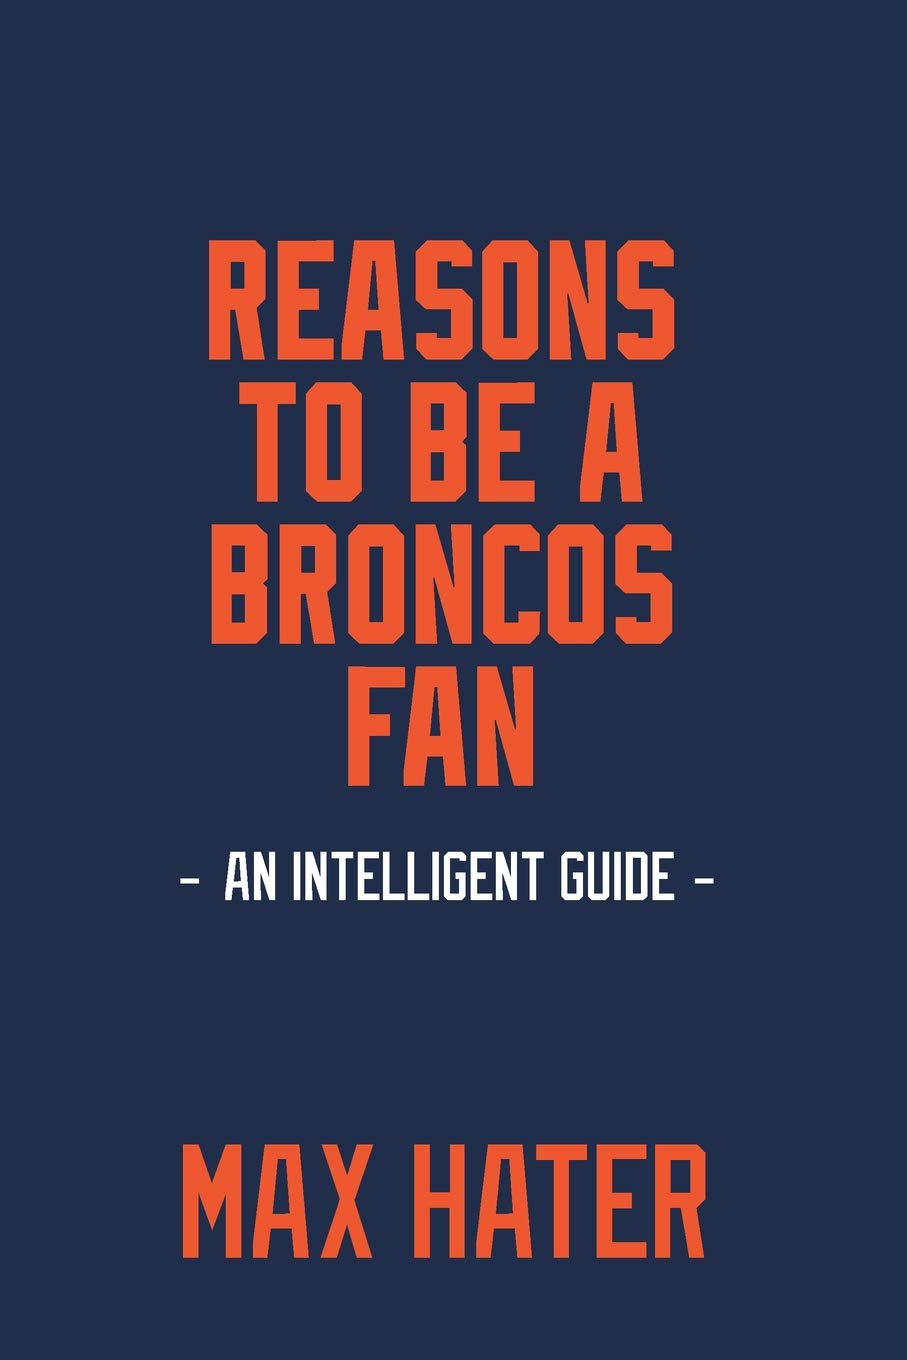 Reasons To Be A Broncos Fan: A funny, blank book, gag gift for Denver Broncos fans; or a great coffee table addition for all Broncos haters! pdf